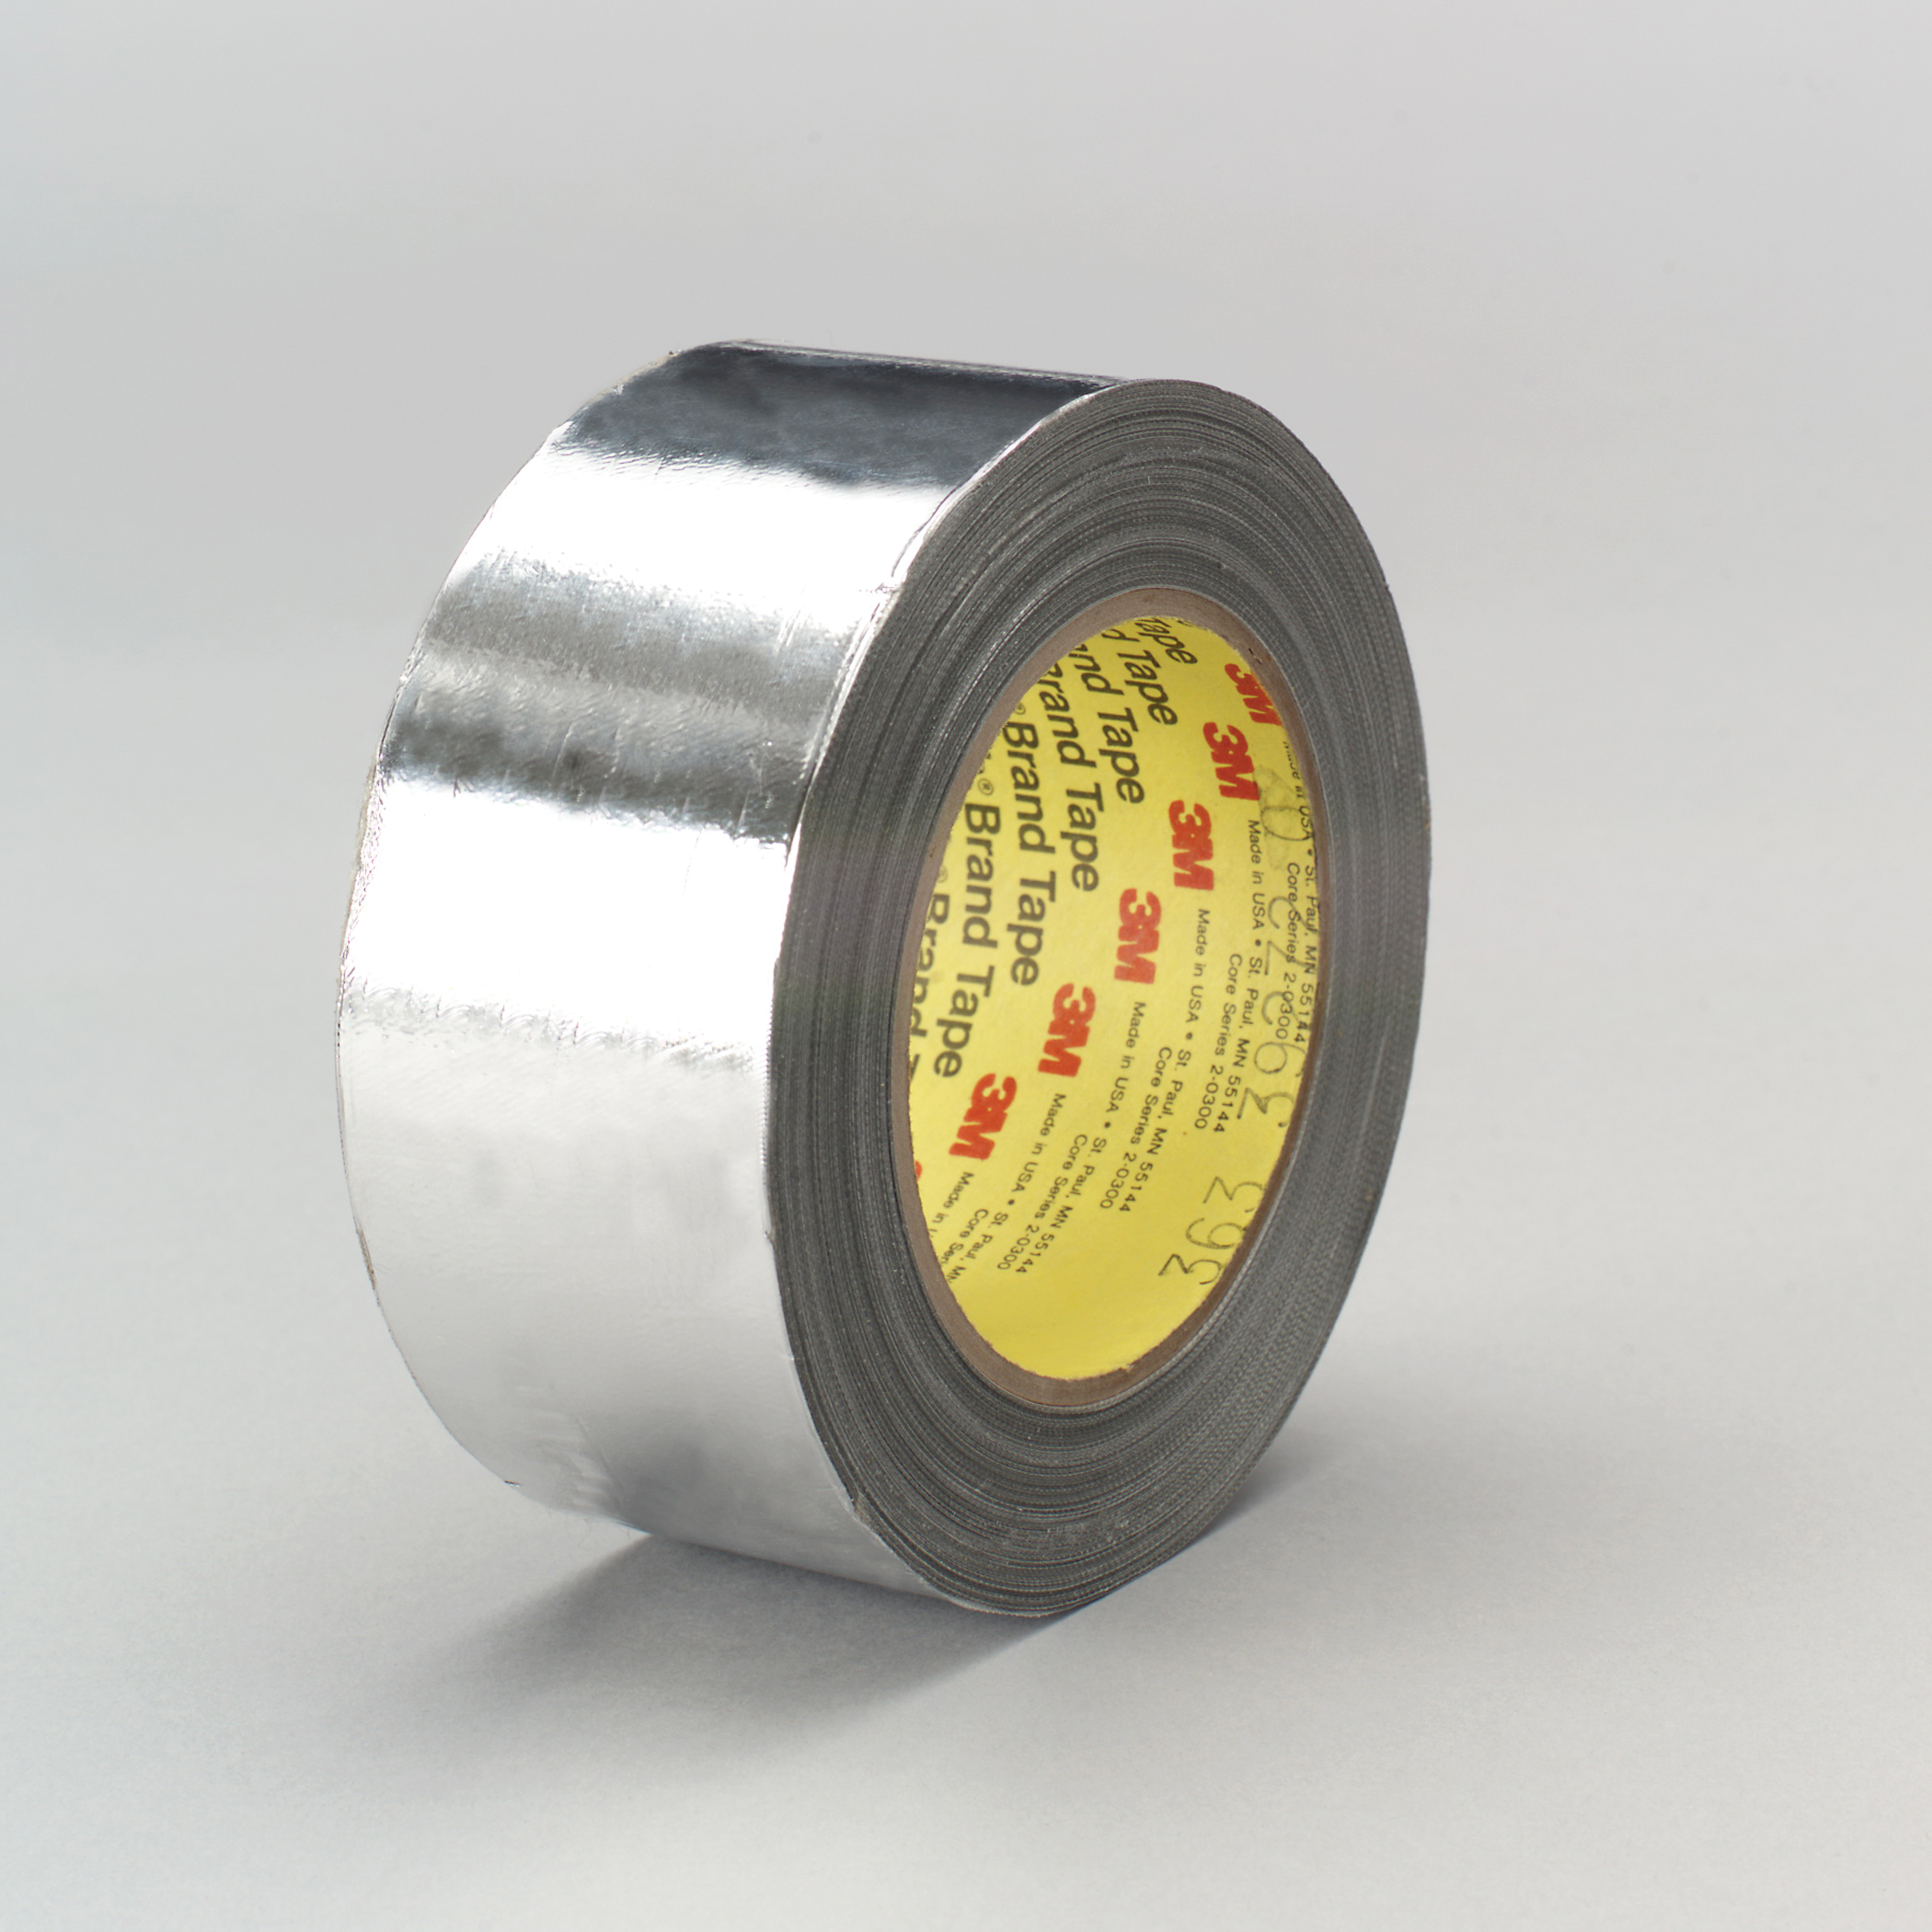 3M™ 021200-17294 High Temperature Cloth Tape, 36 yd L x 1 in W, 7.3 mil THK, Silicone Adhesive, Aluminum Foil Laminated to Glass Cloth Backing, Shiny Silver